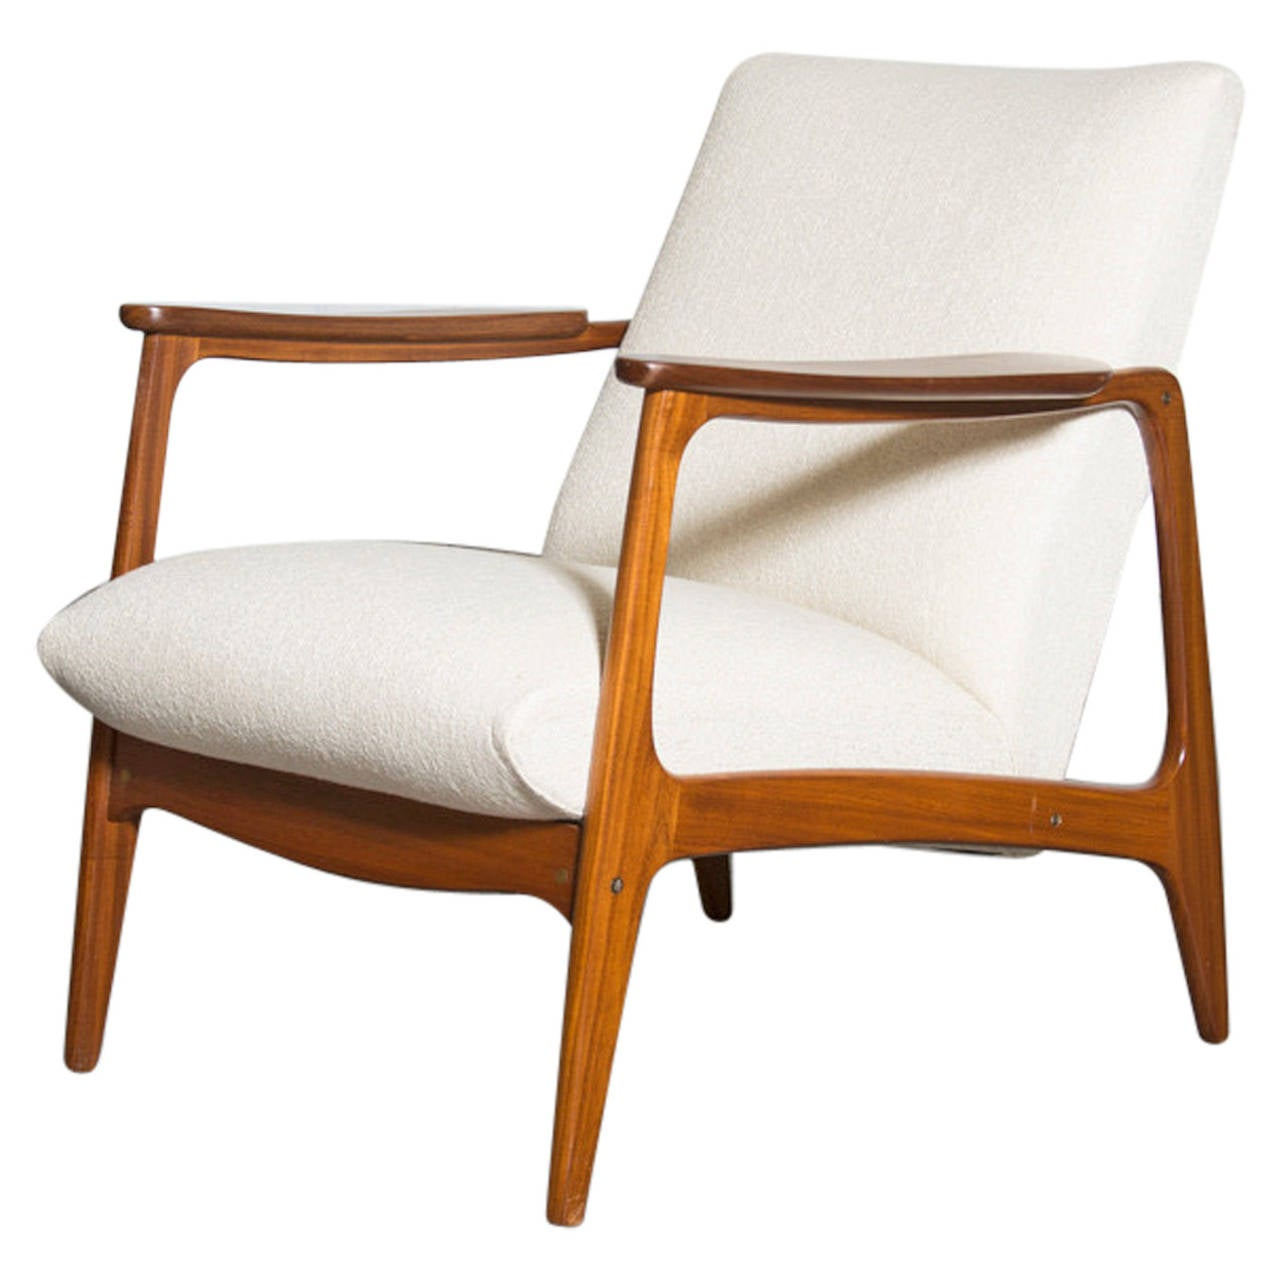 Mid Century Lounge Chair Mid Century Teak Upholstered Lounge Chair At 1stdibs